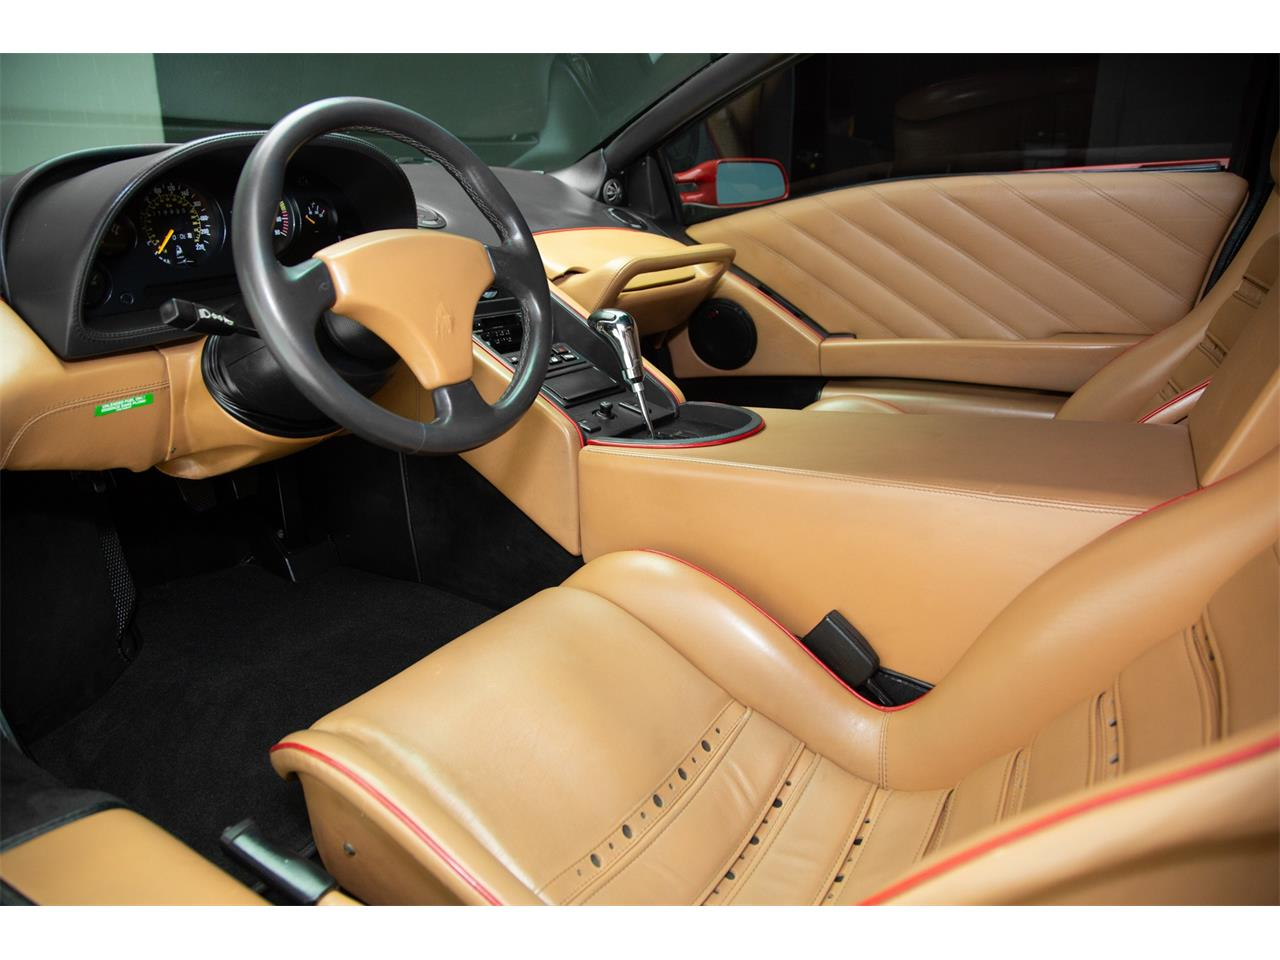 1995 Lamborghini Diablo for sale in Des Moines, IA – photo 11